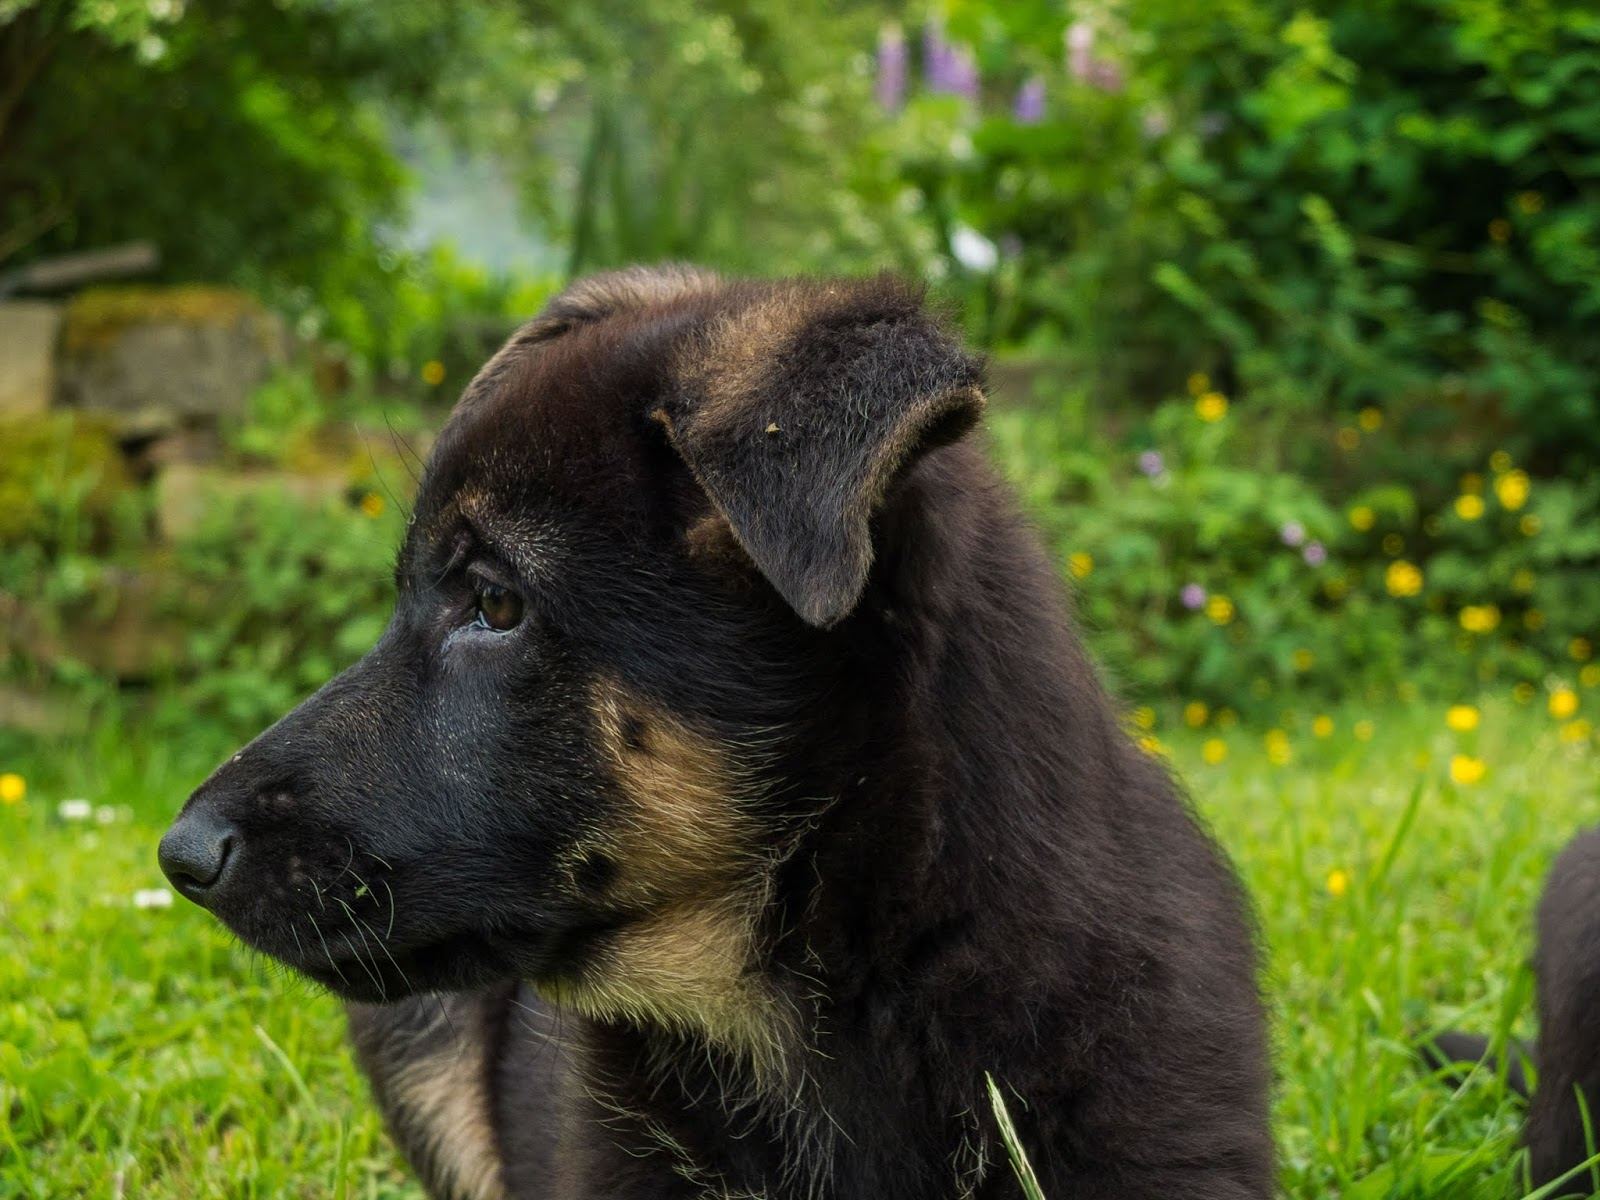 A two month old German Shepherd puppy face with ears down.